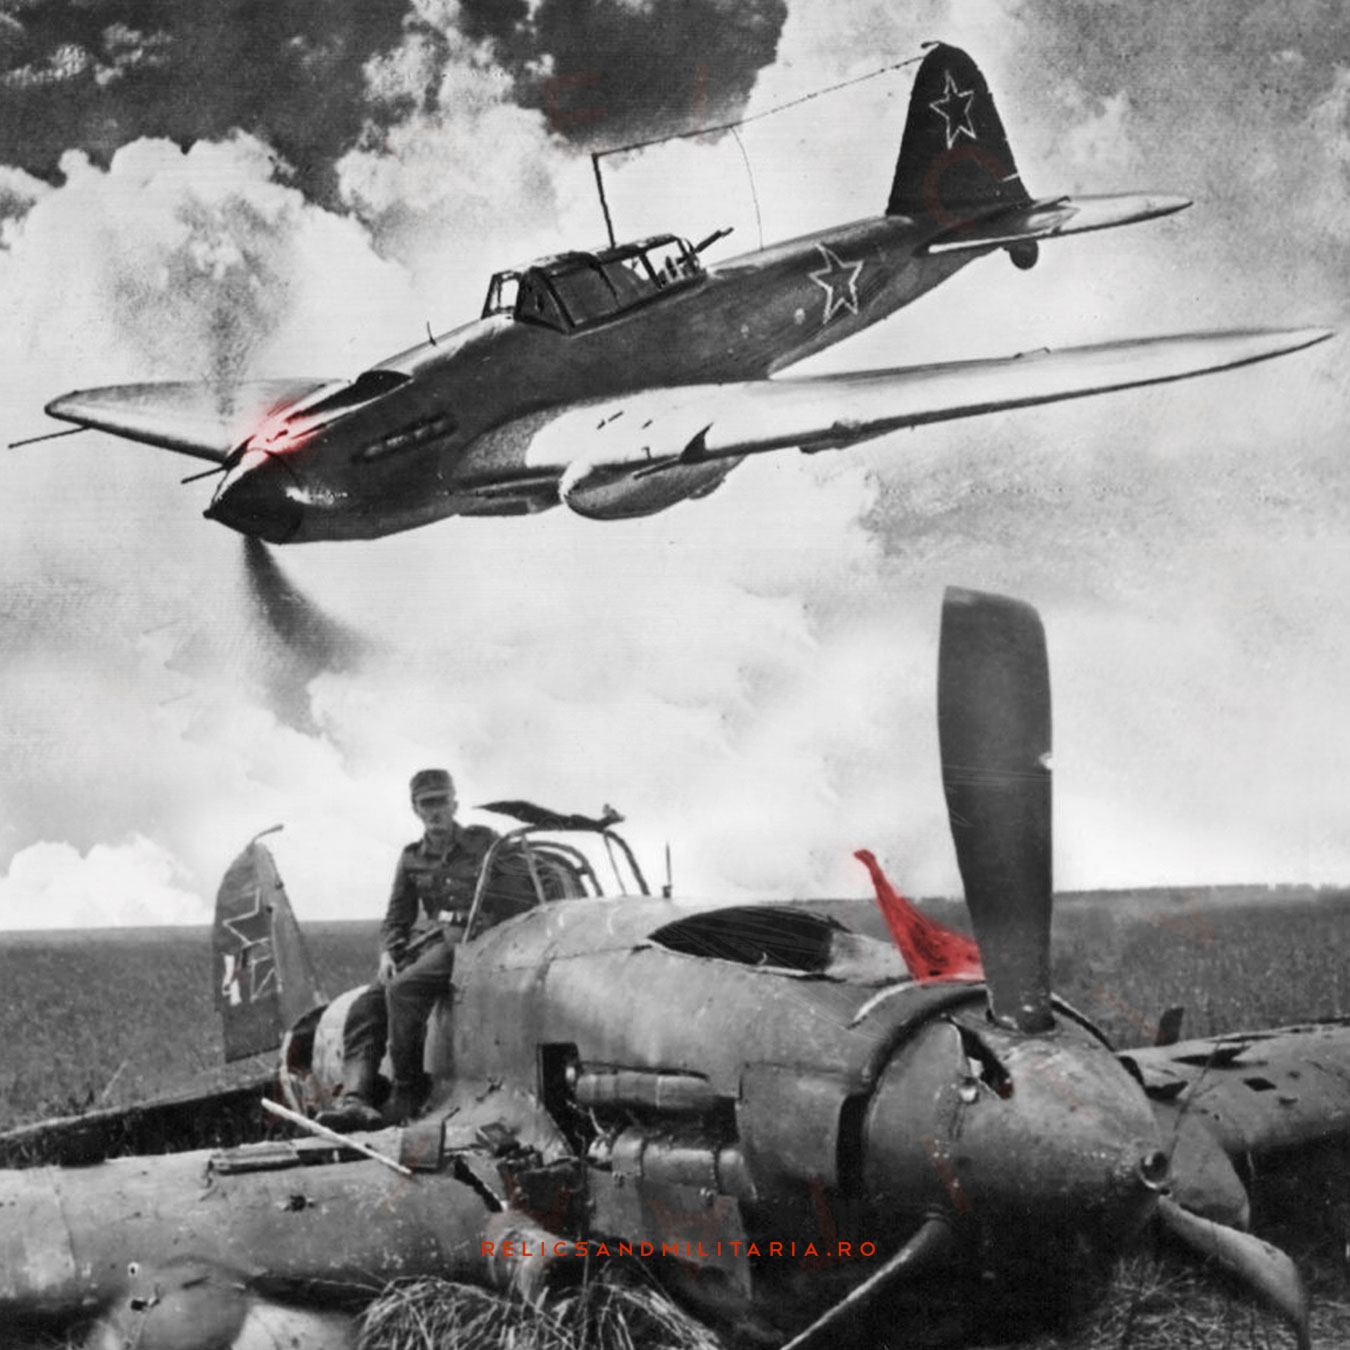 Ilyushin Il-2 Shturmovik Russian ww2 ground-attack aircraft